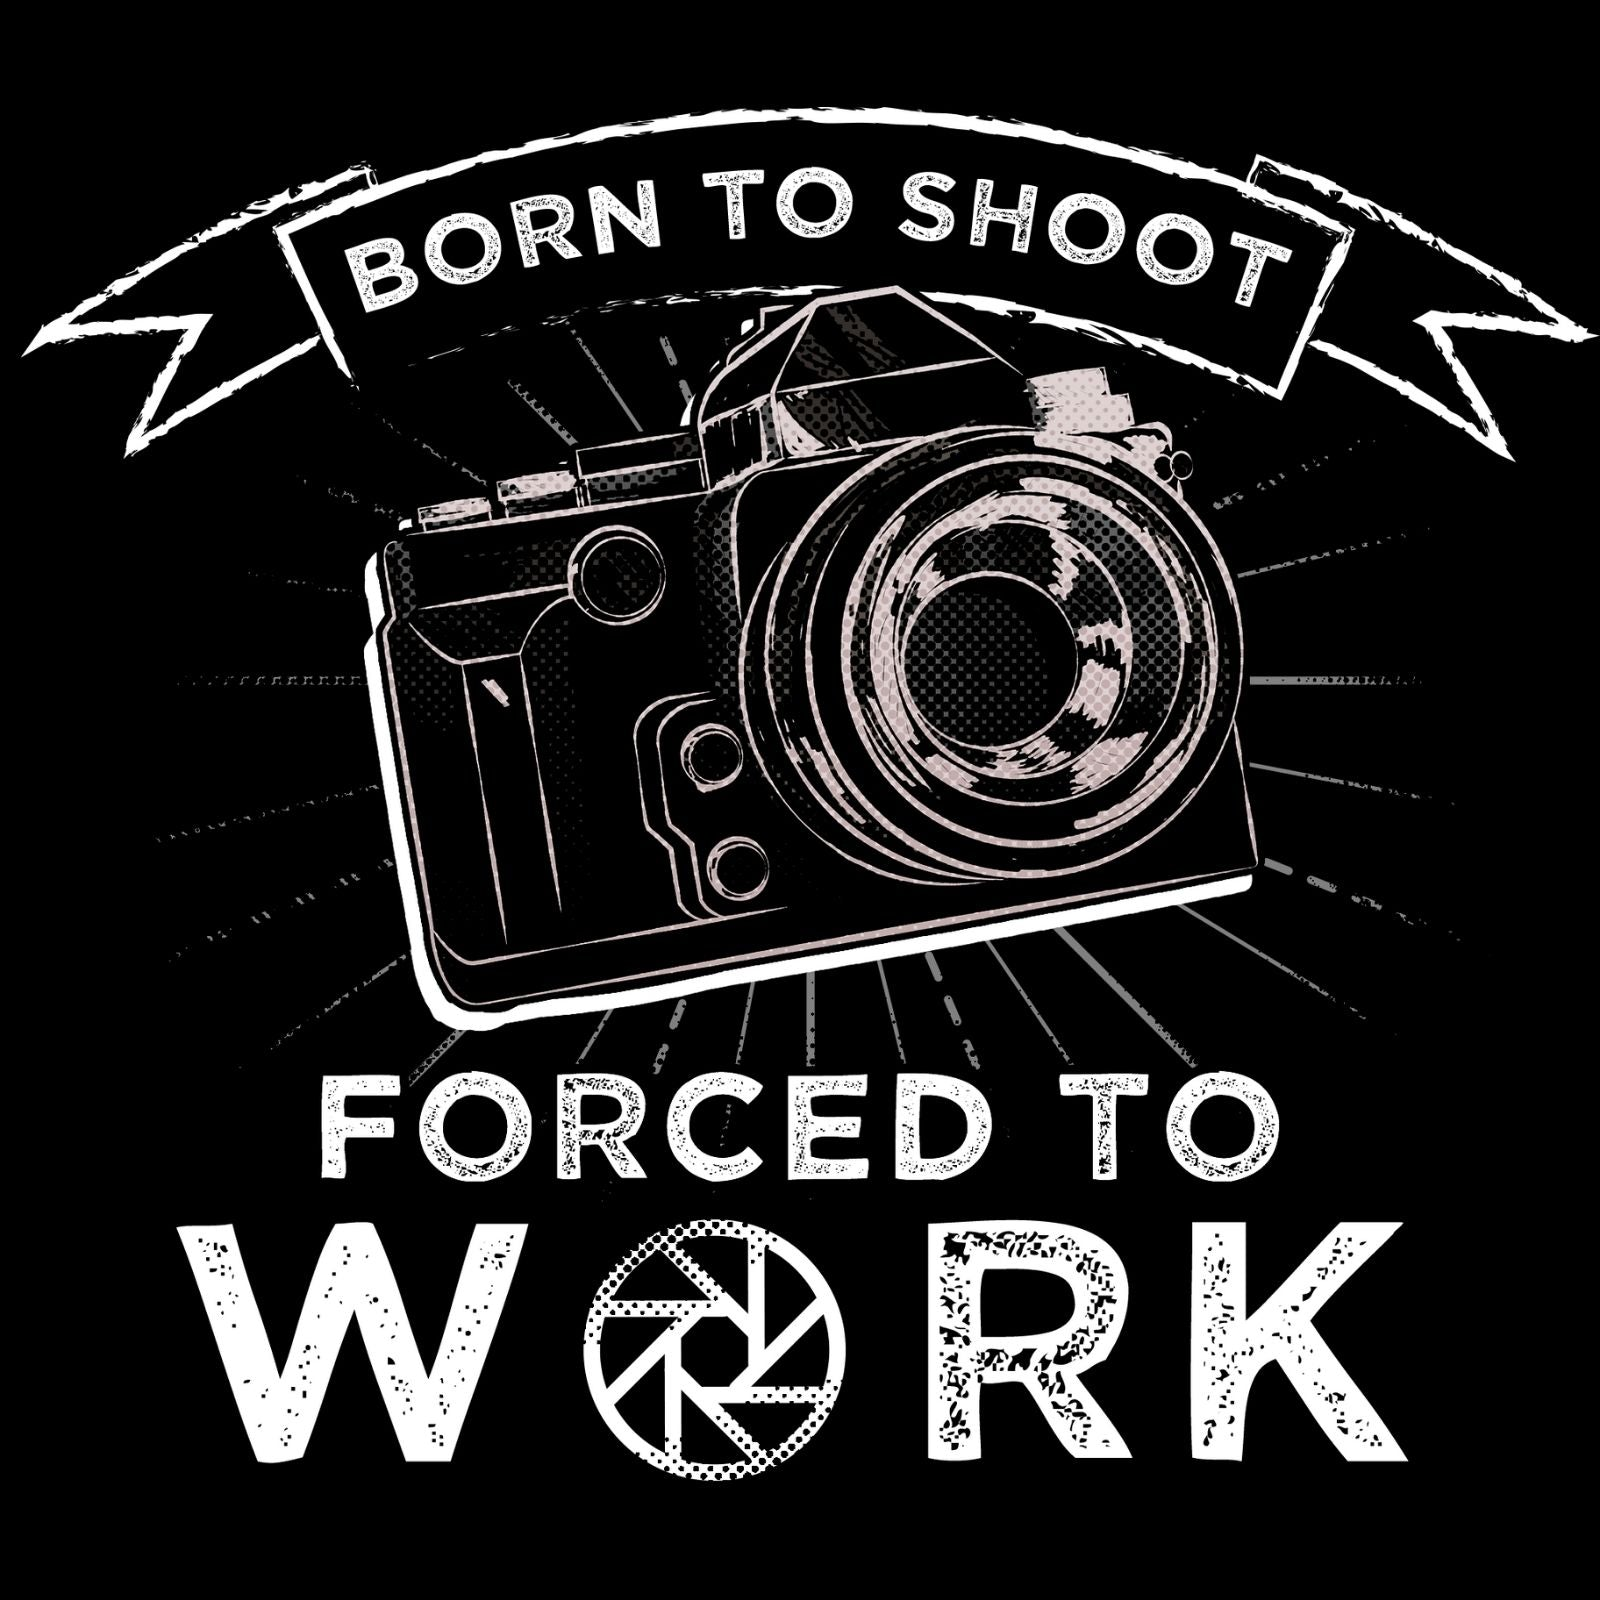 Born To Shoot Forced To Work - Bastard Graphics